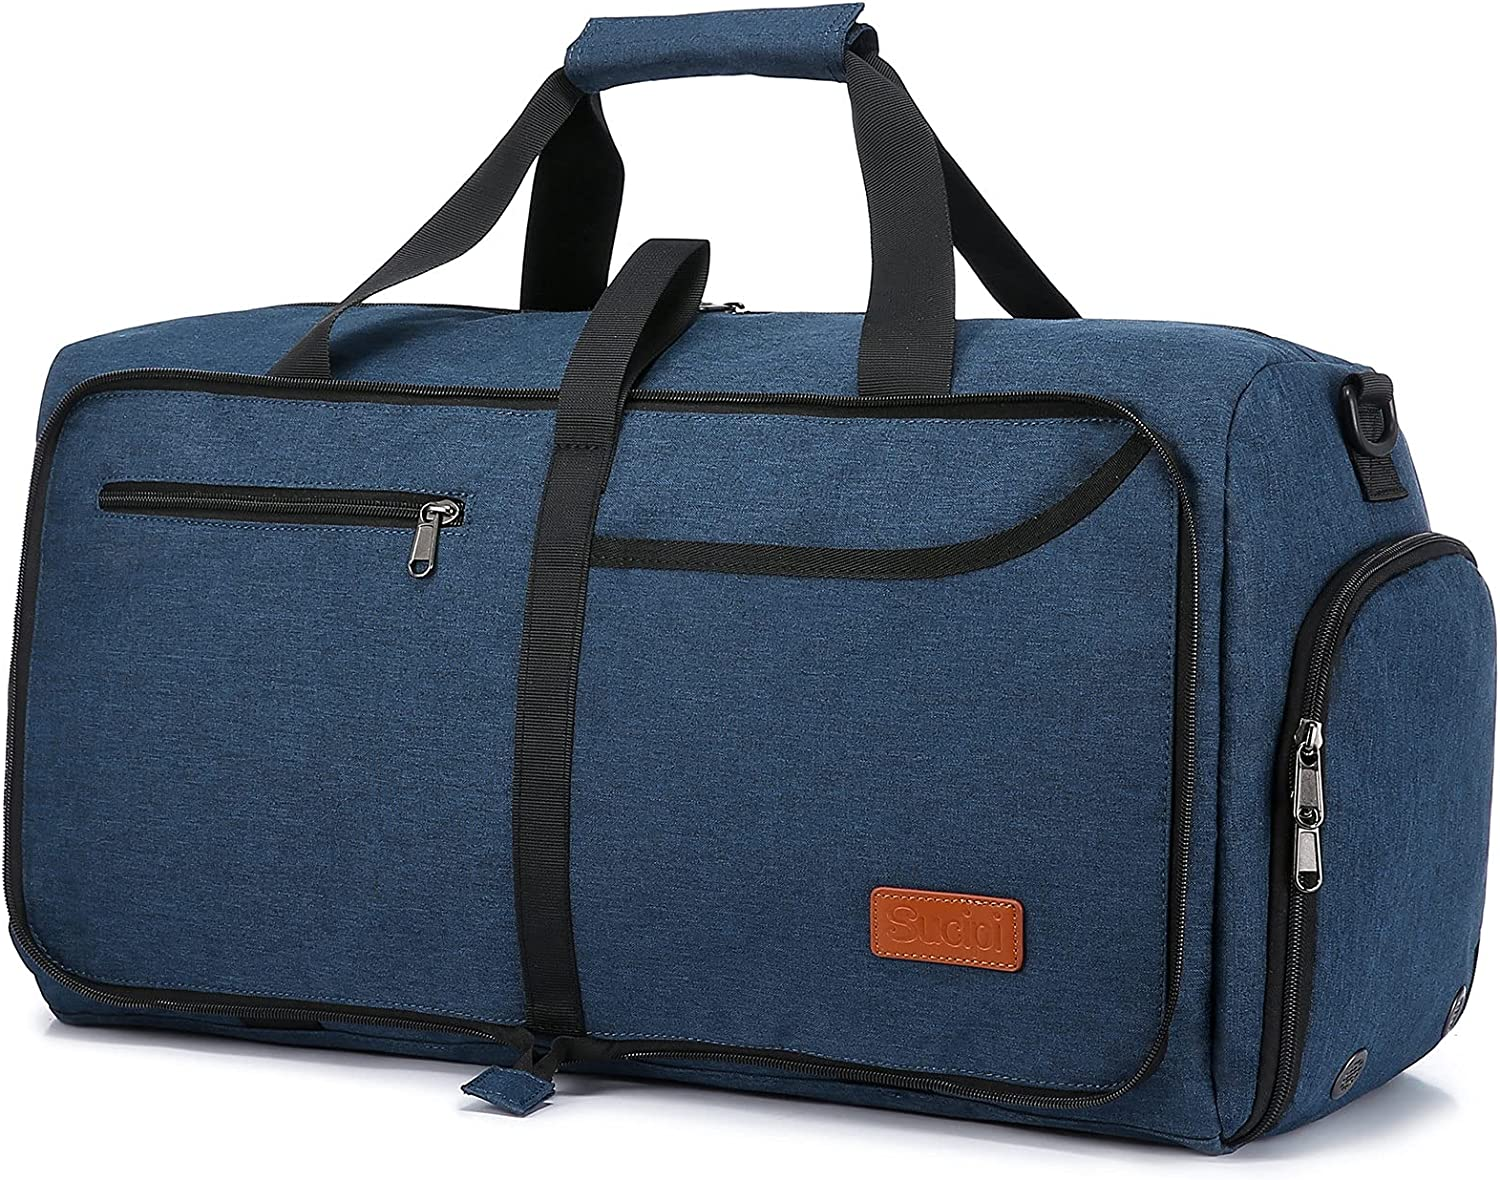 Sucipi Max 79% OFF Travel Duffel Bag Foldable Courier shipping free Weekender Com with Shoes